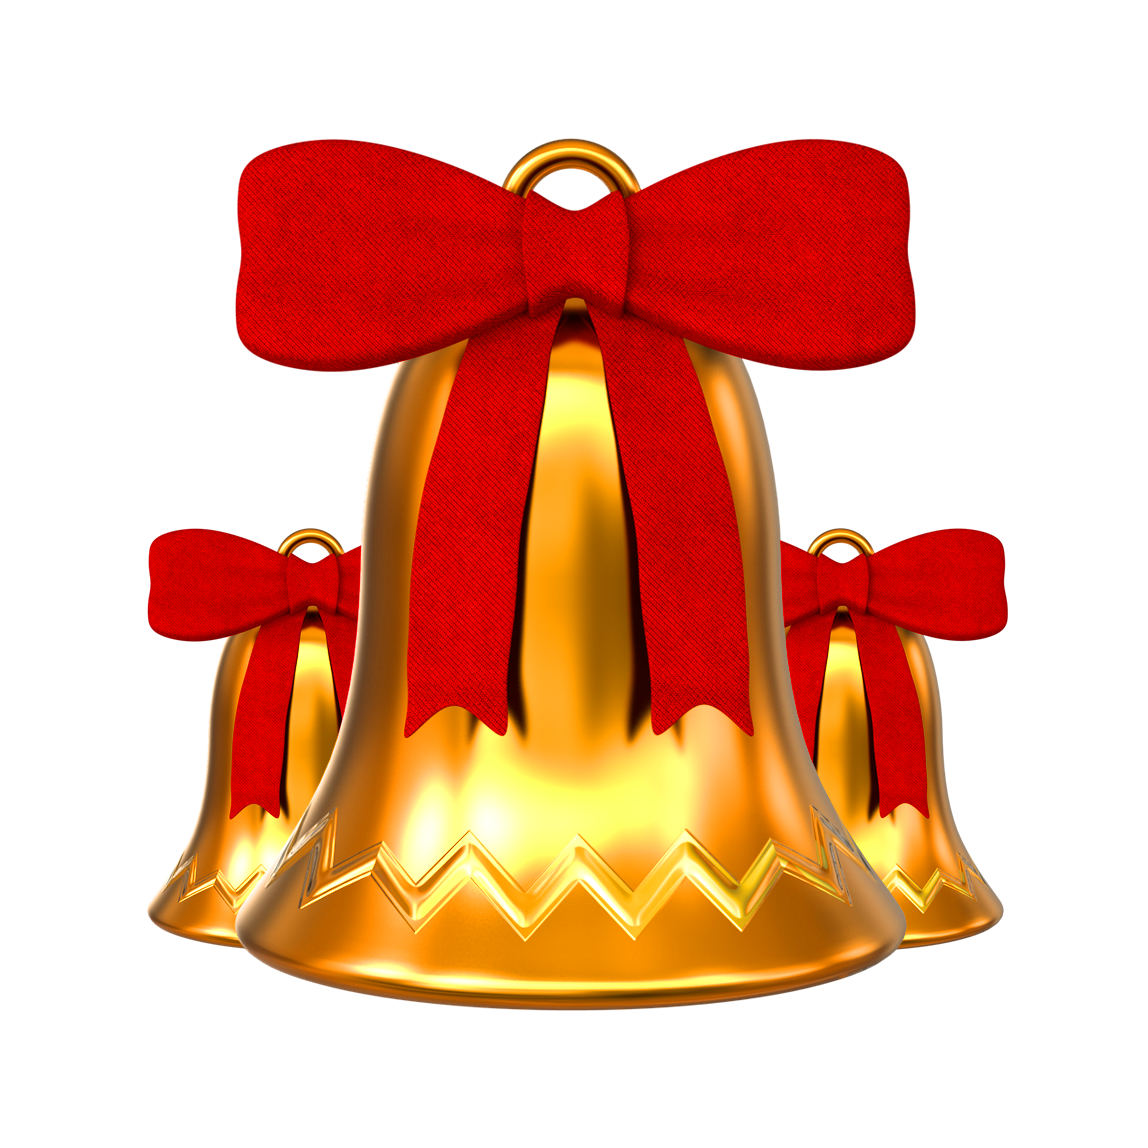 Free download Christmas bell png transparent image It can